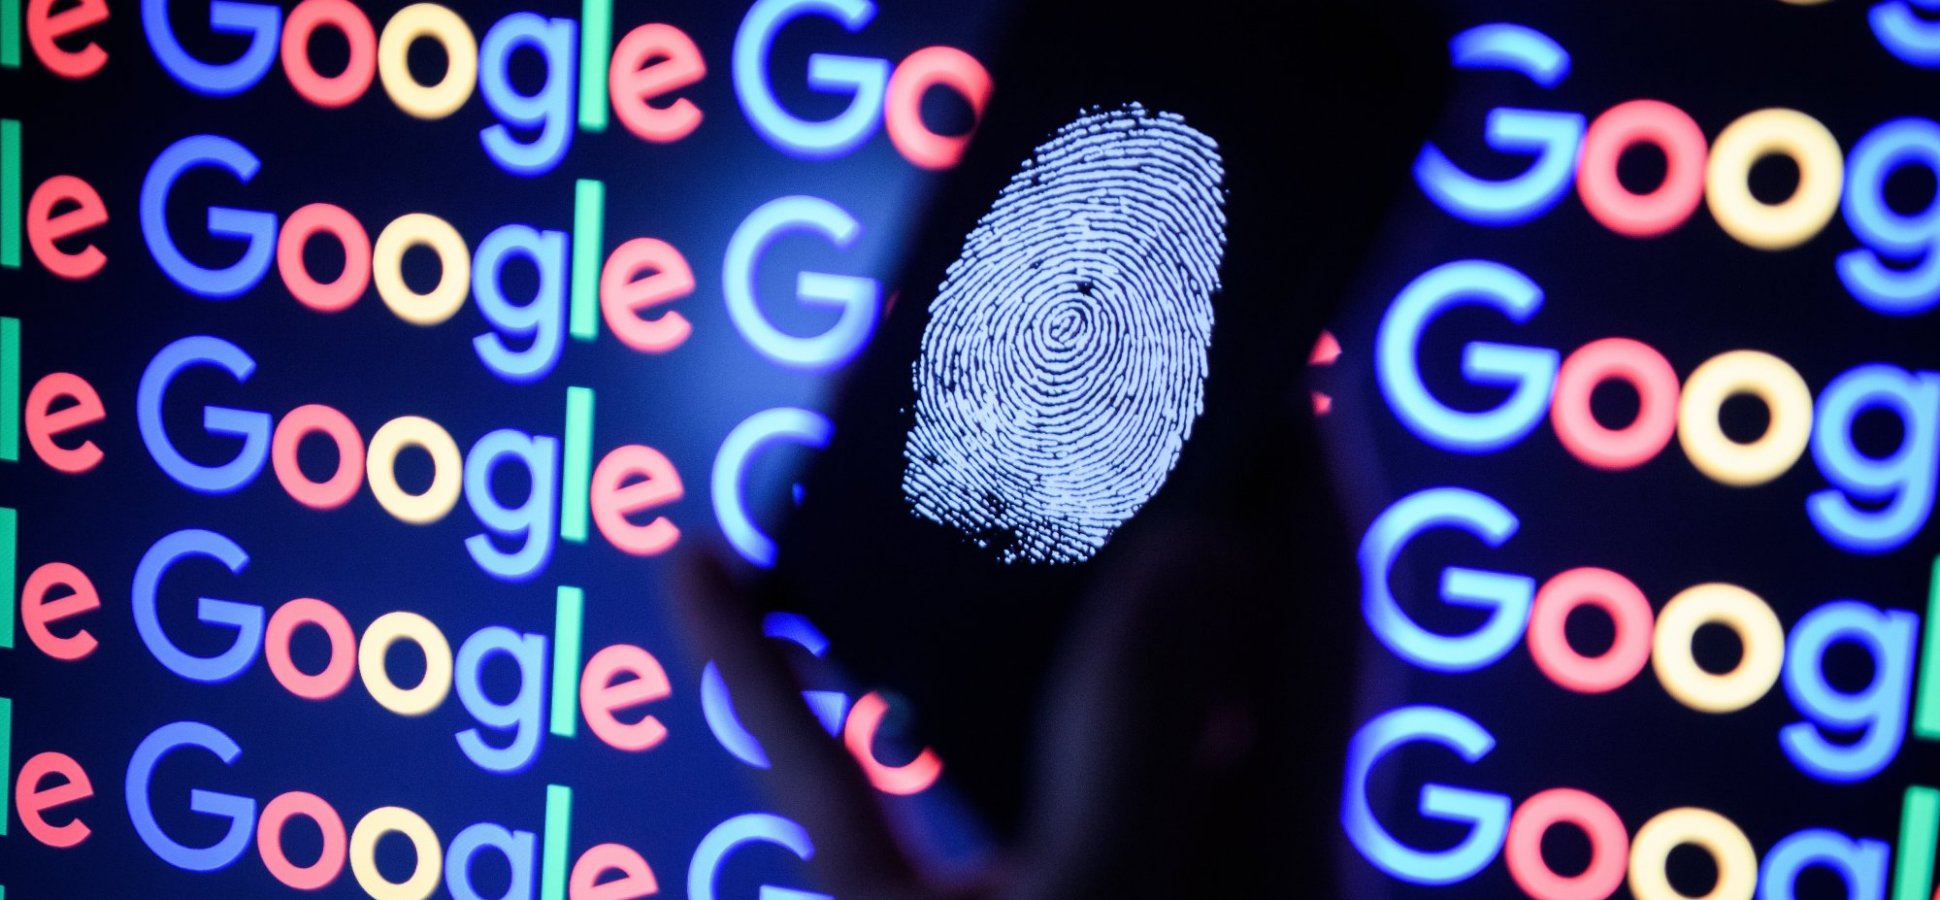 Google Releases New Privacy Tools for YouTube and Maps Users, Allowing Data to Auto-Delete